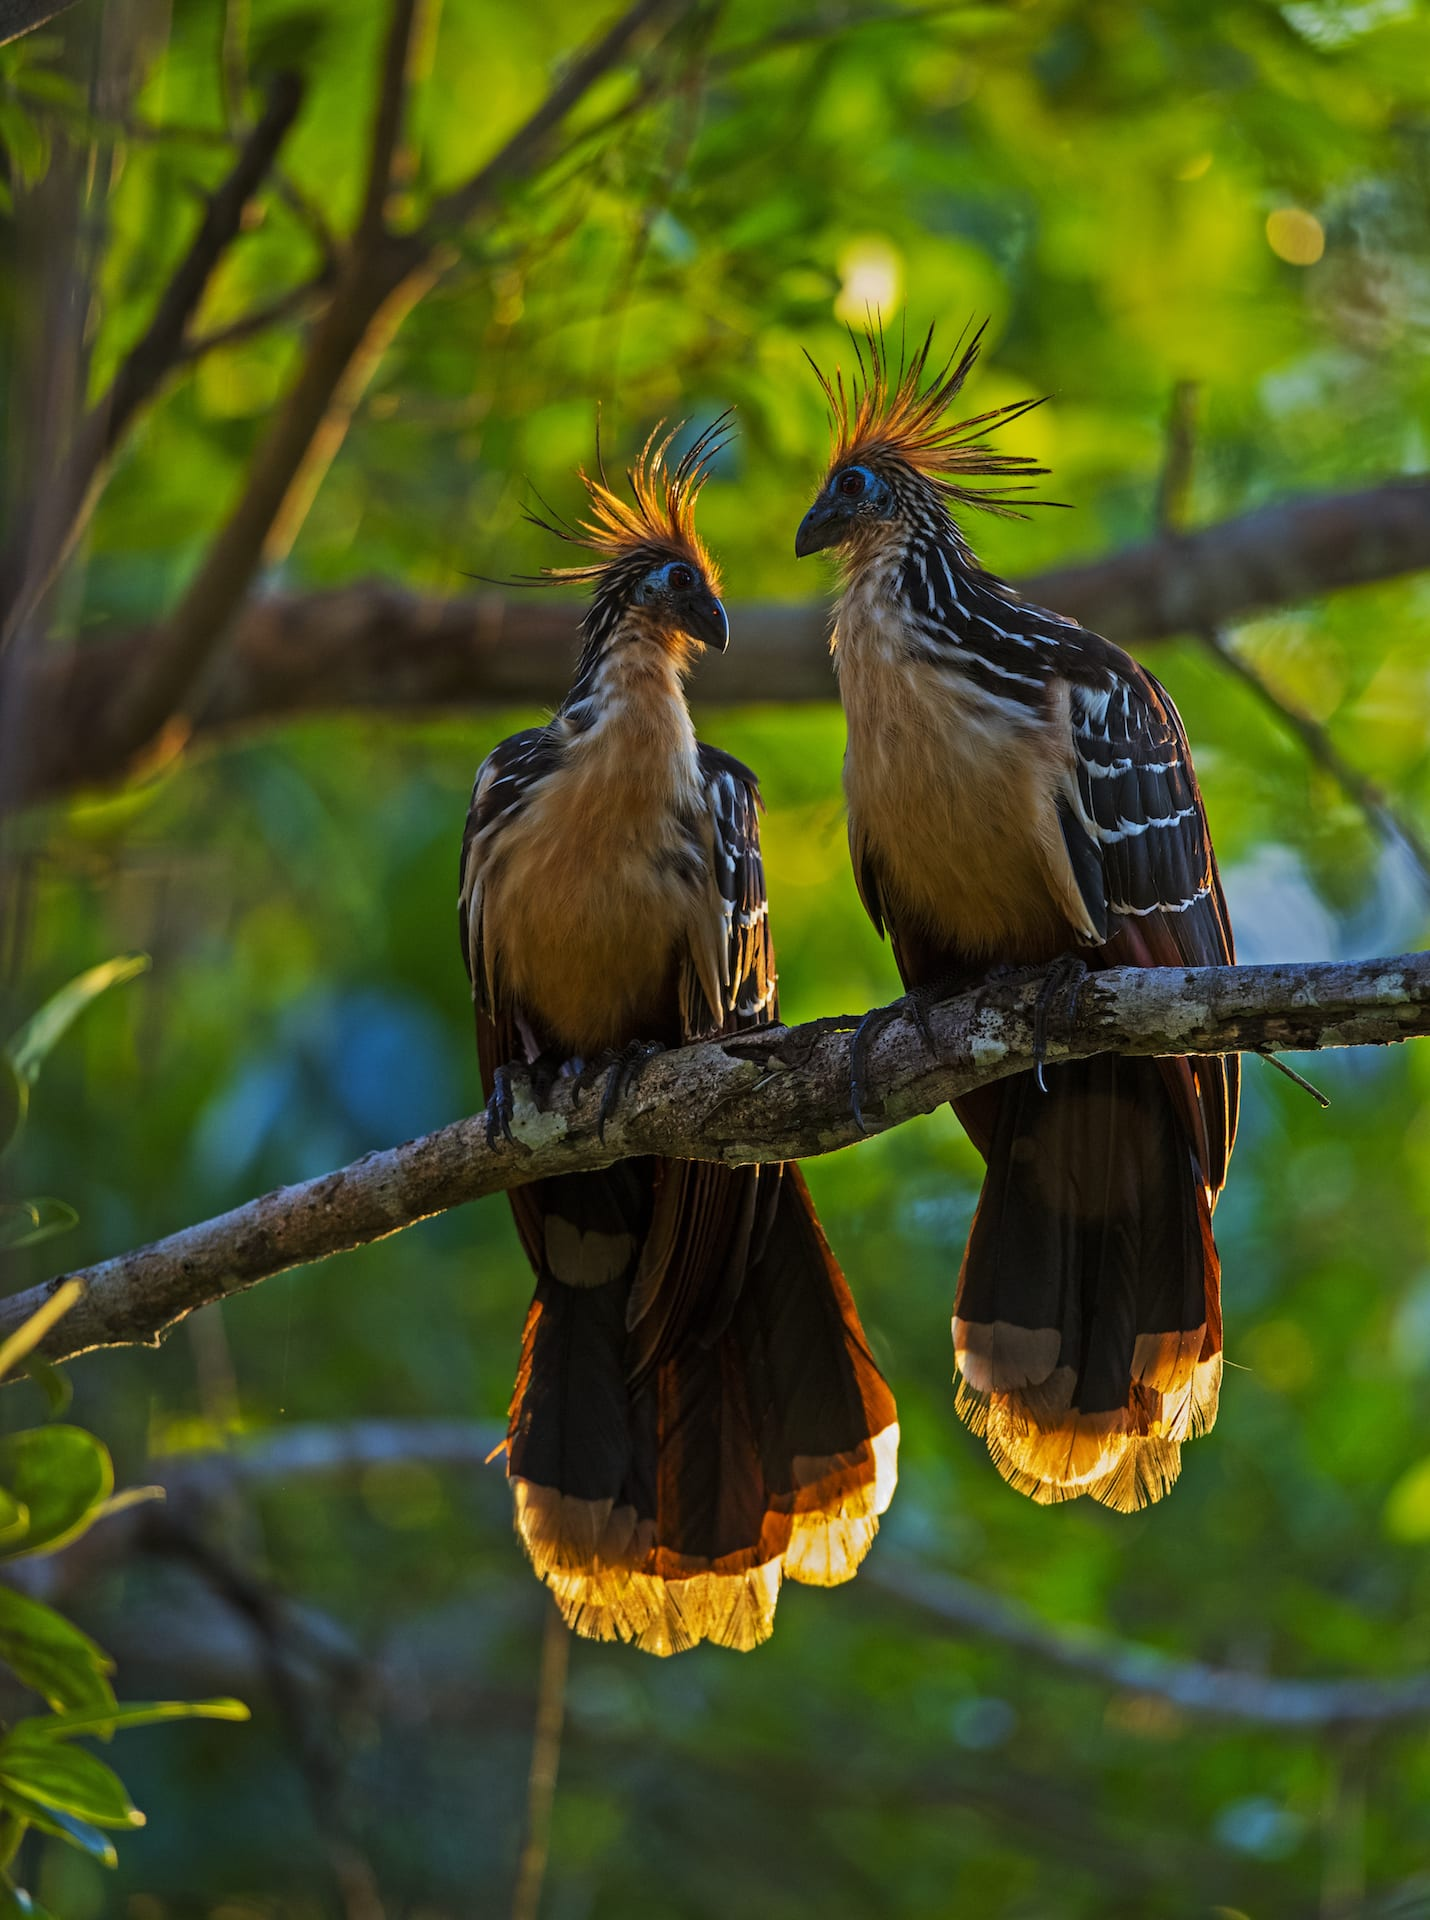 Hoatzins are considered the pruners of the forest canopy. They survive on a diet of leaves, much like bovine animals, and sped their days eating greens, digesting food, and spreading their nutrient-rich poop across the floor. 